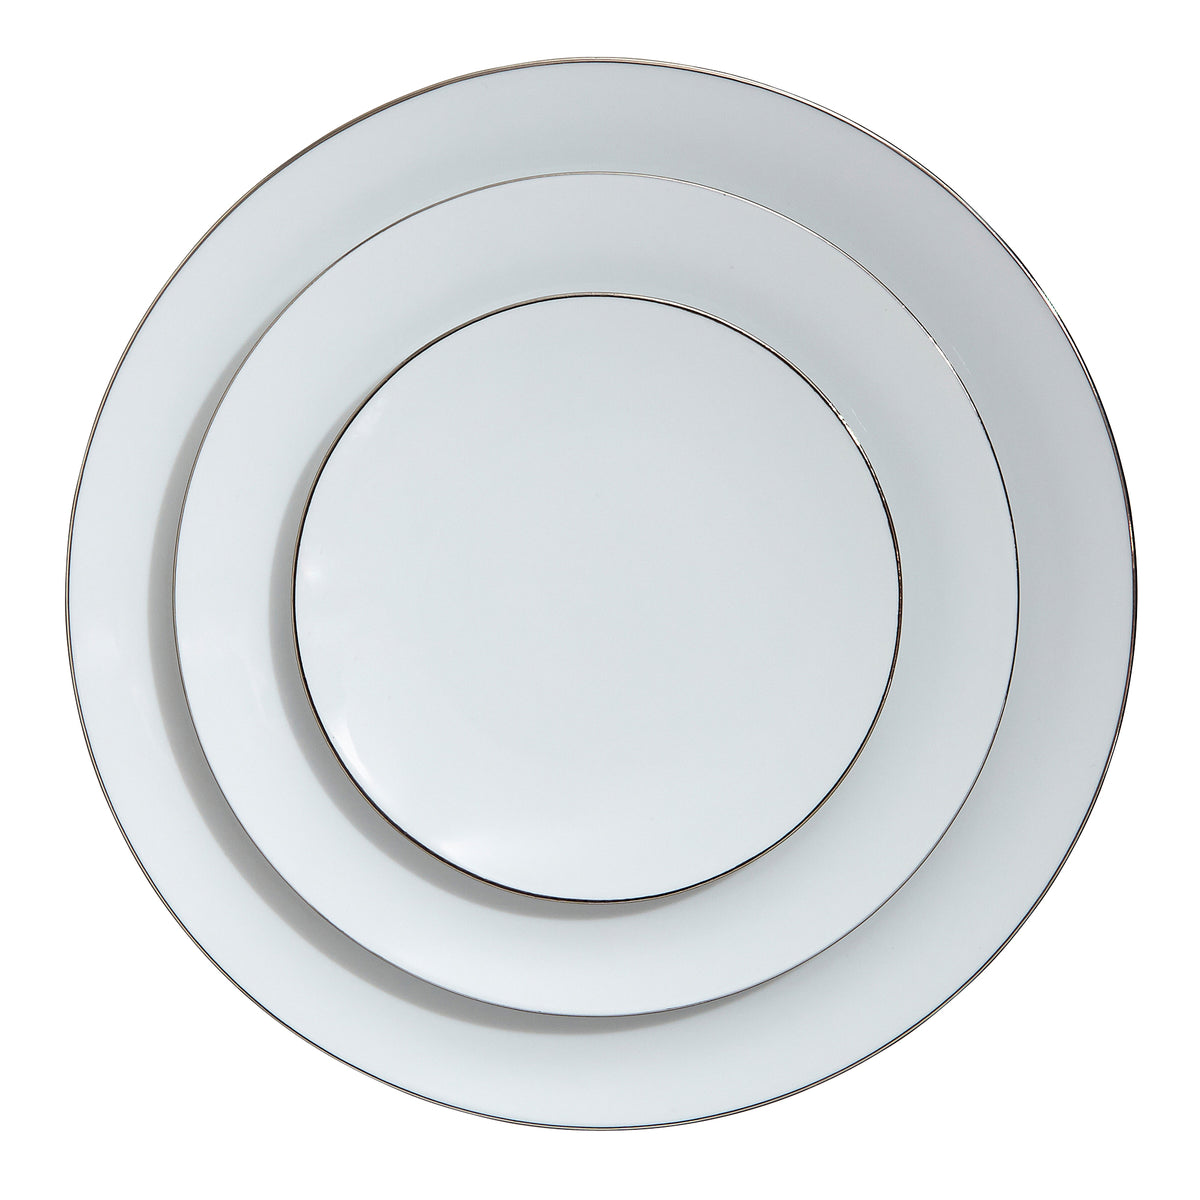 Platinum Filet Porcelain Bread and Butter Plate